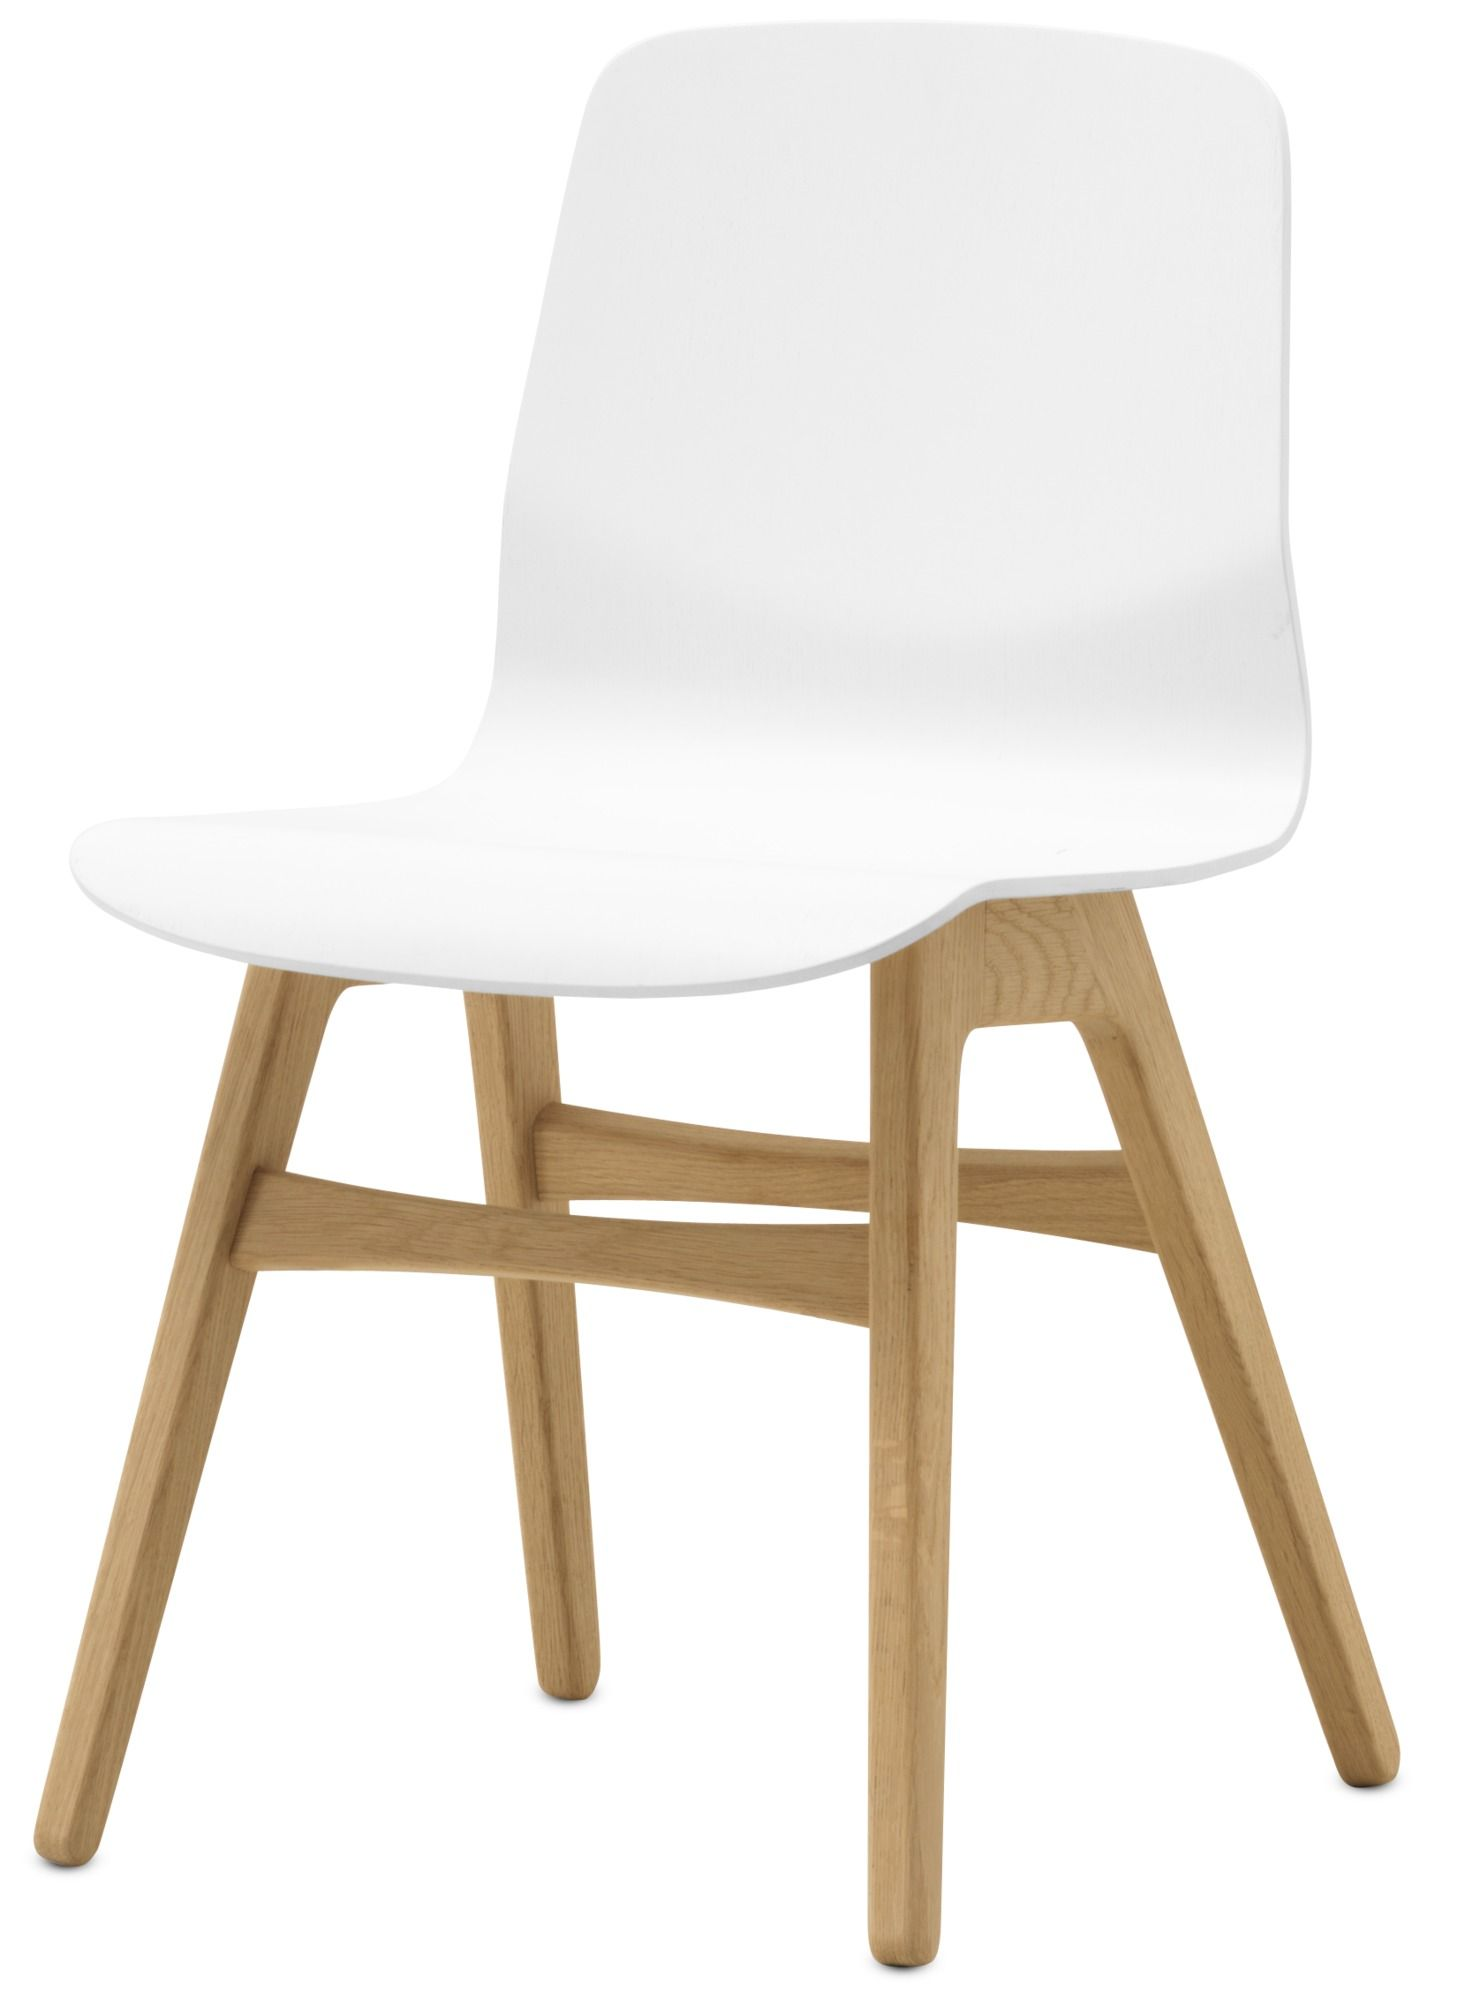 Modern Dining Chairs, Dining Chair Sydney, Designer Dining